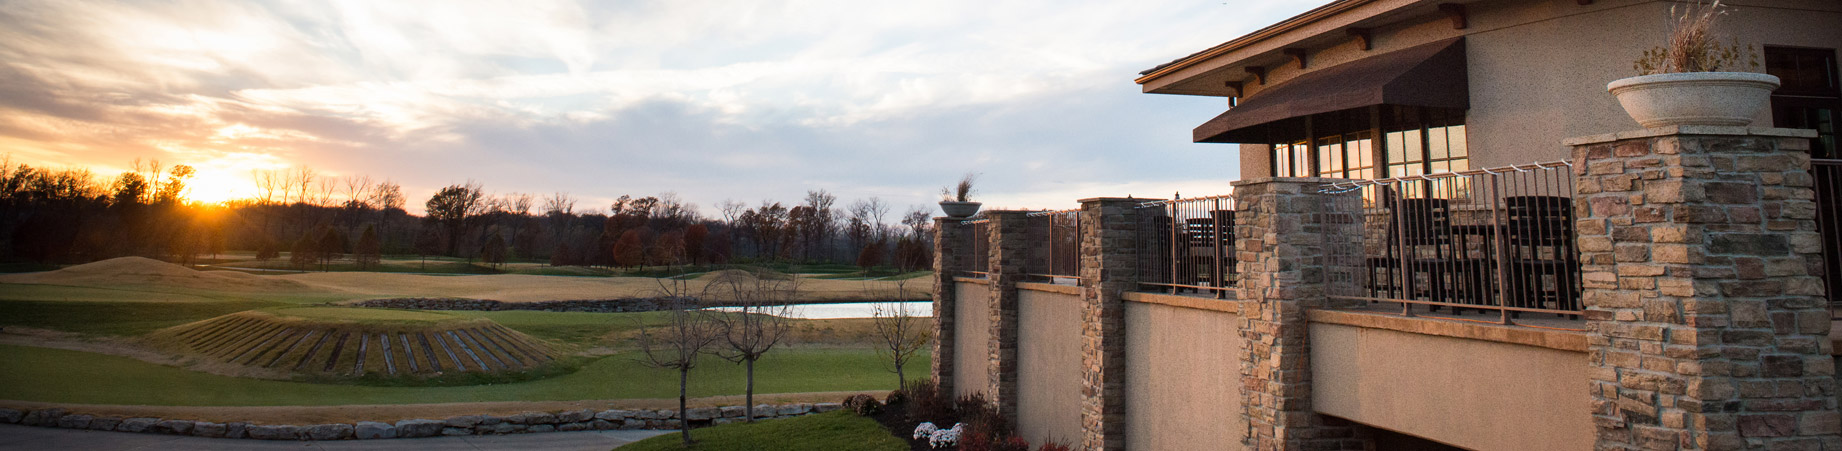 Sunset overlooking the golf course at Old Hickory Golf Club